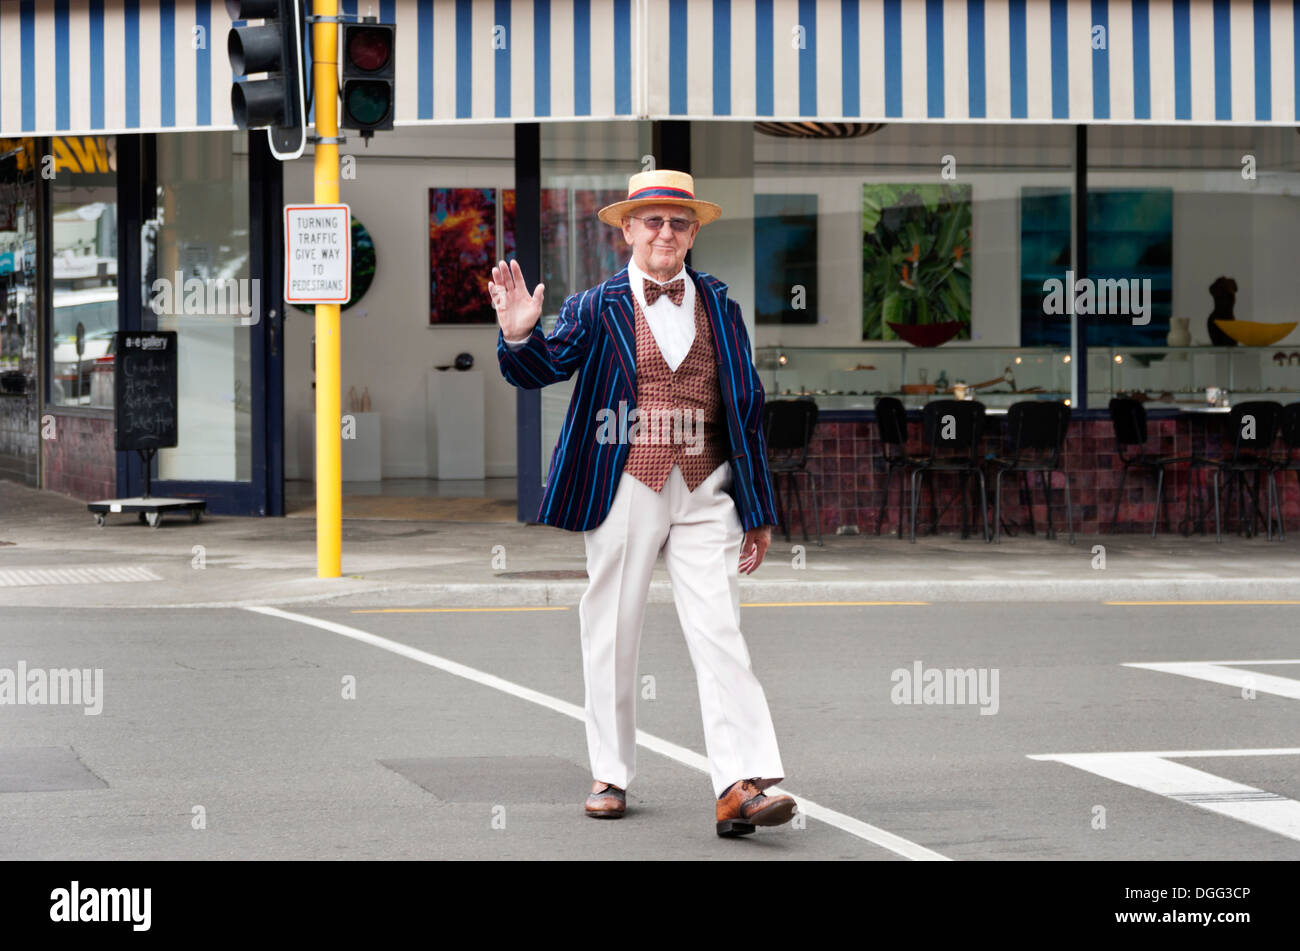 Man dressed in 1930s style clothing in the art deco city of Napier, New Zealand. - Stock Image